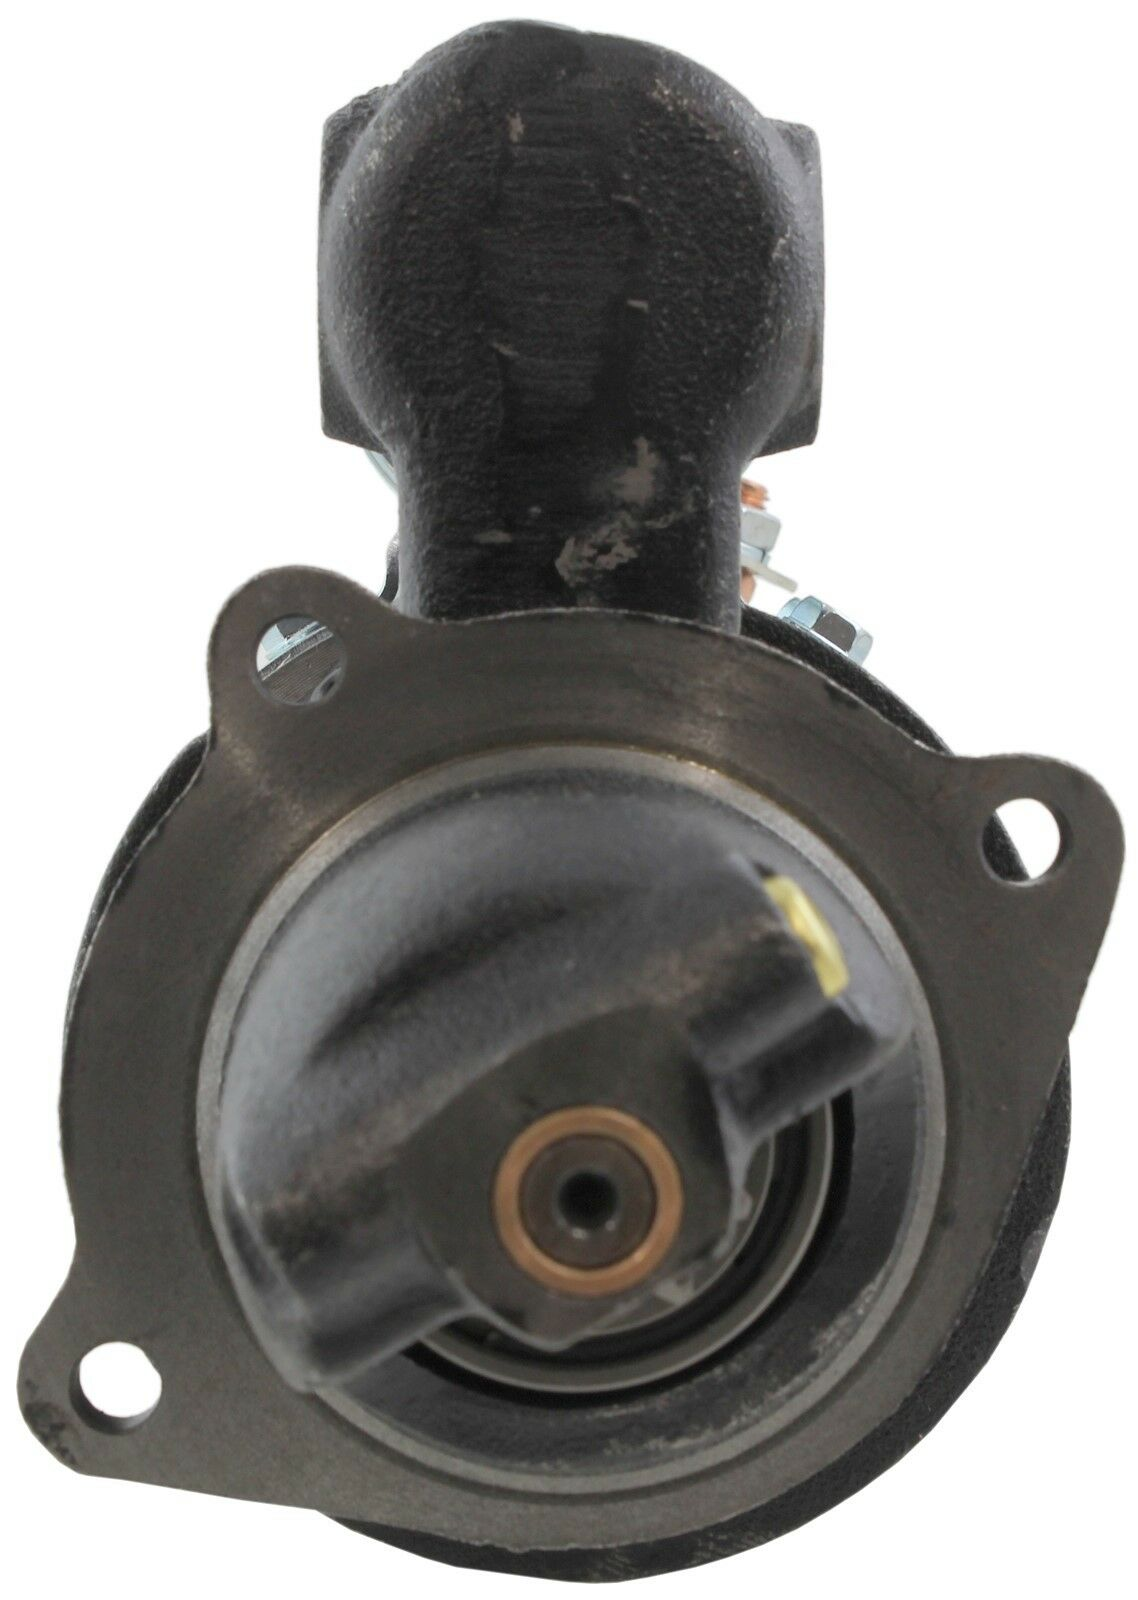 New USA Built Starter IHC Tractors 2444 B242D 12V 10 Tooth 91-01-4052 R1201193